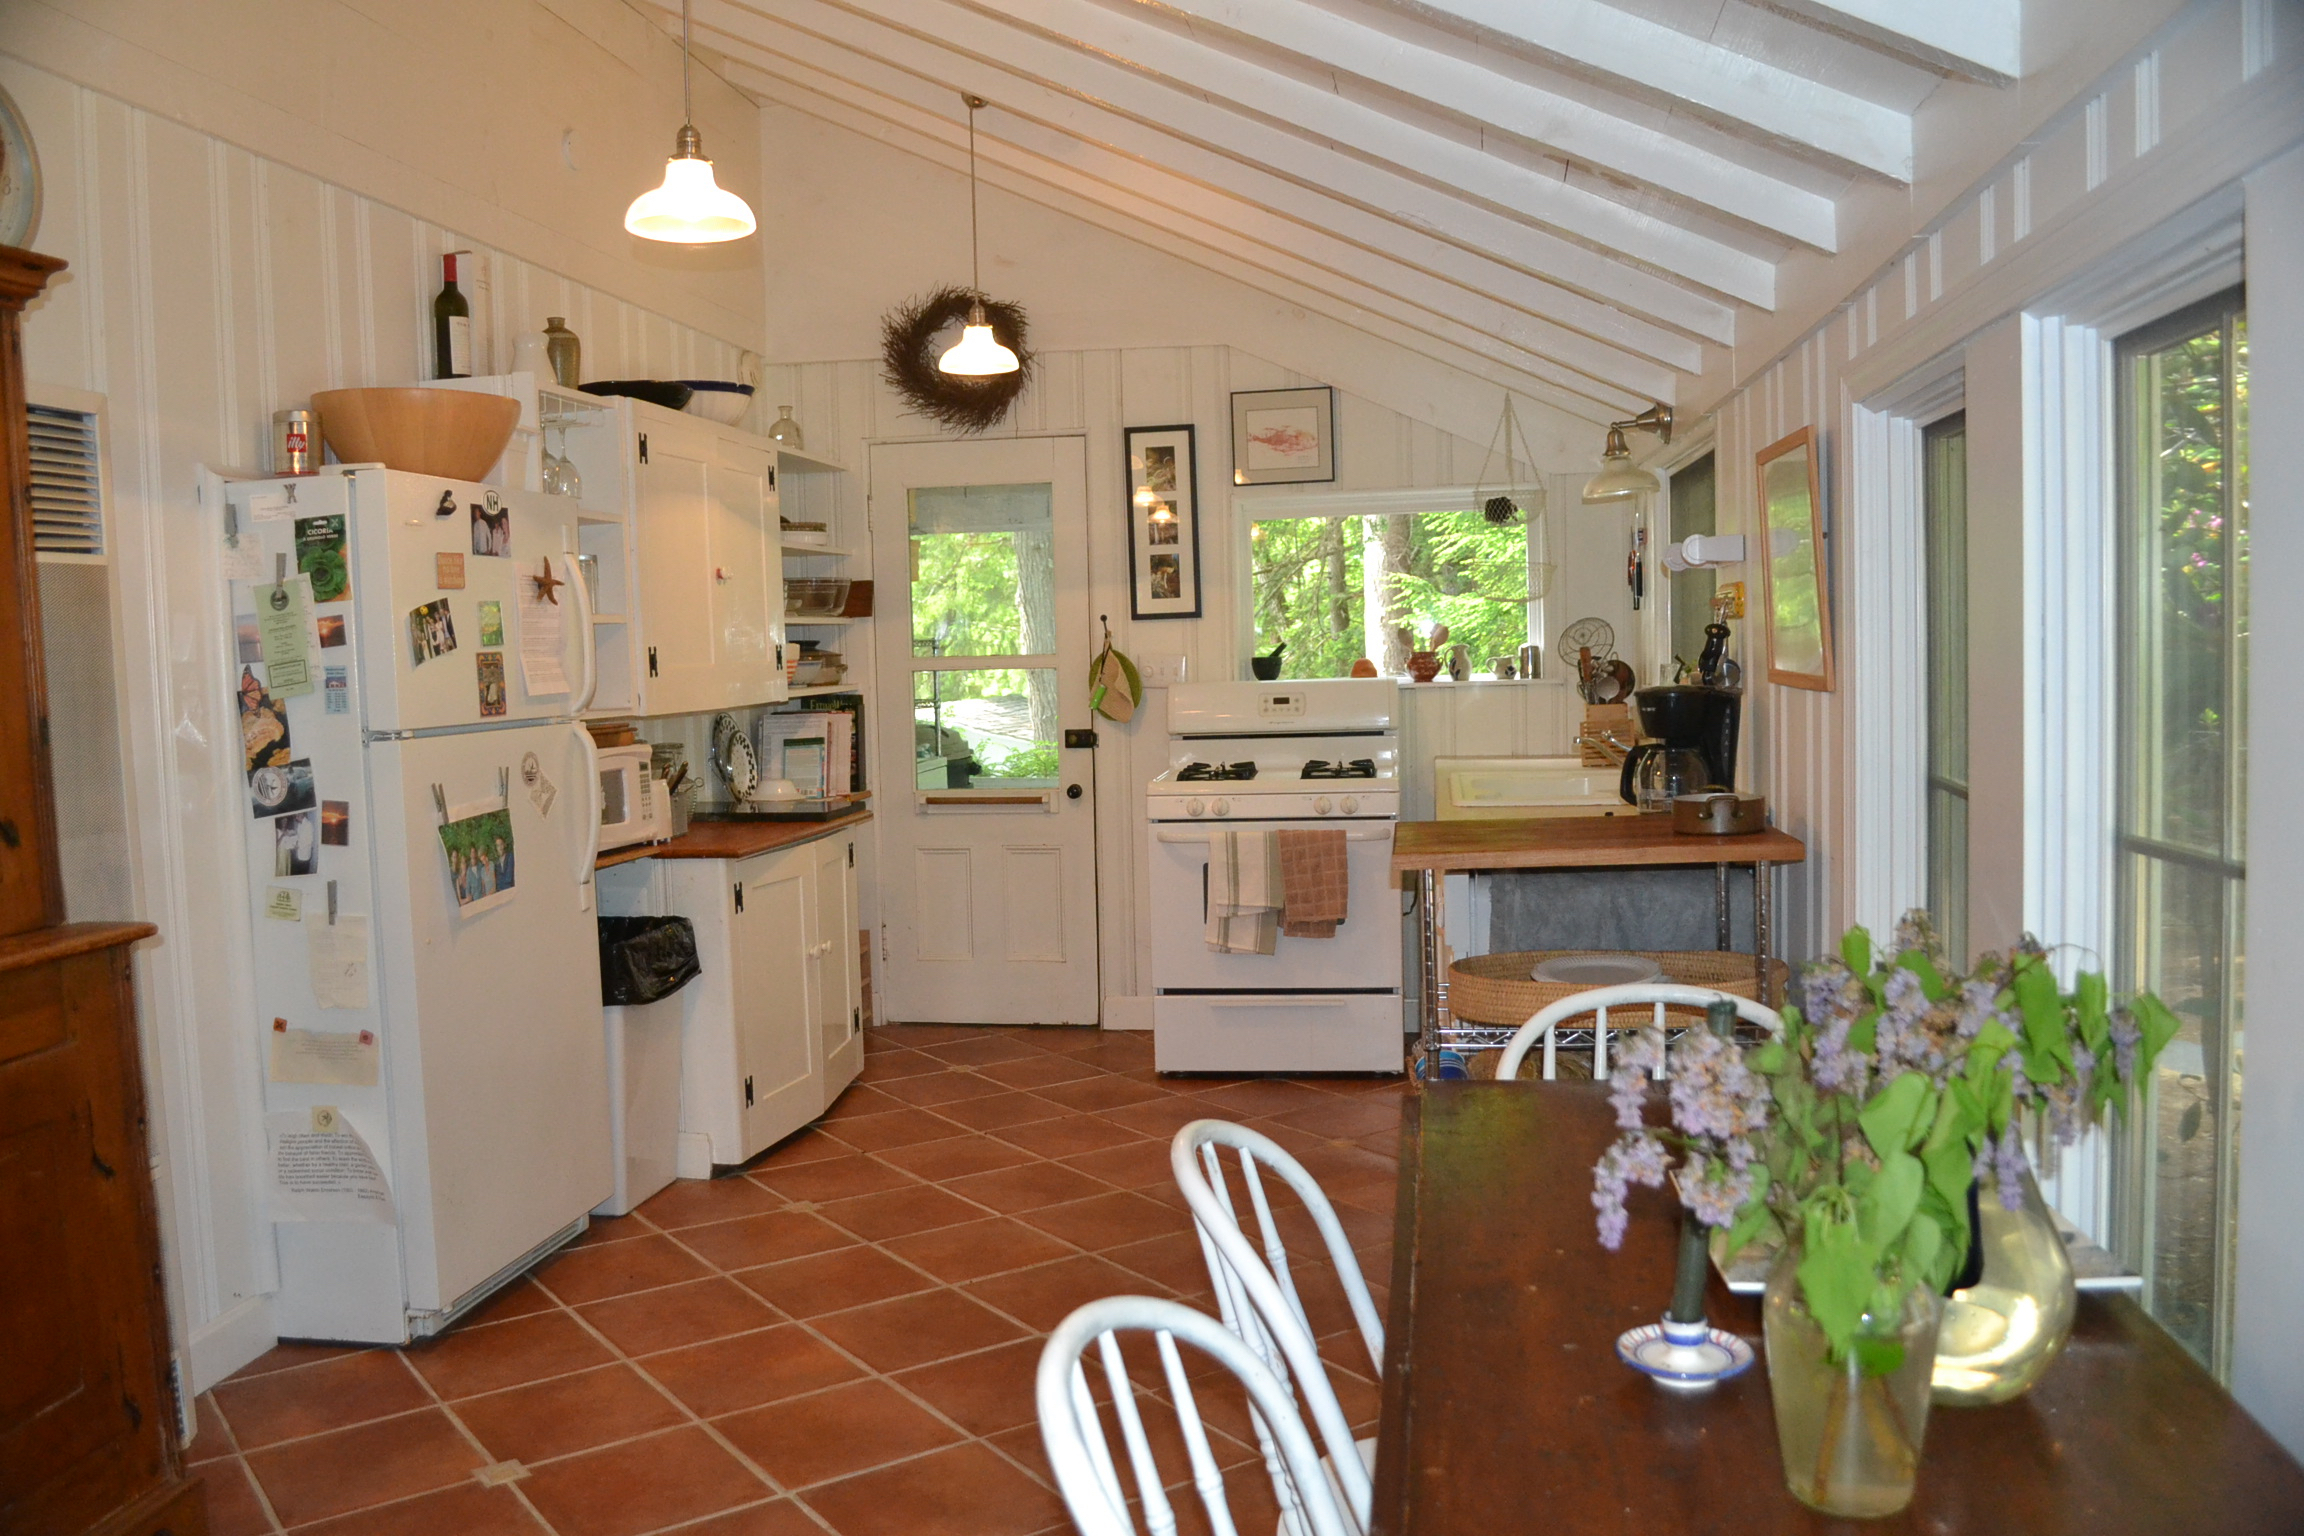 Great East Lake Real Estate for Sale - Cabin for sale on Great East Lake